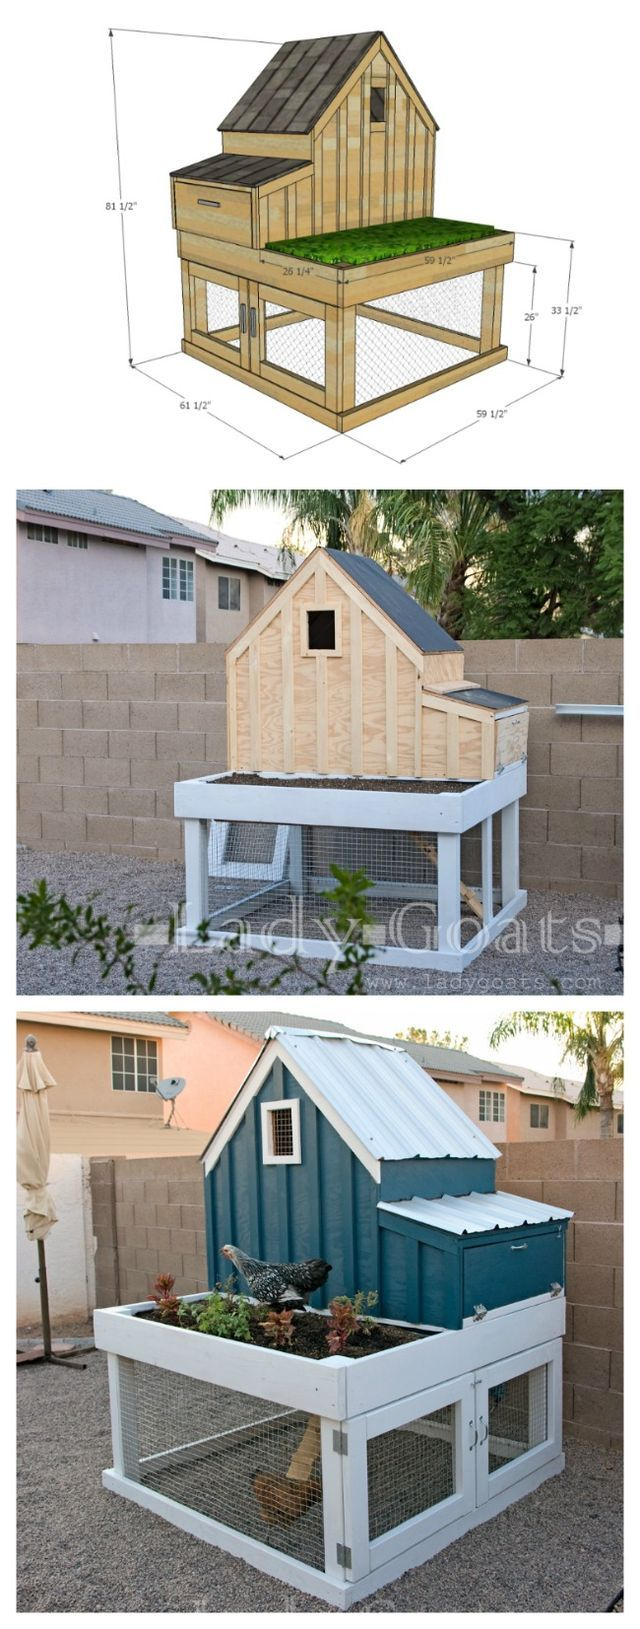 Hi guys! So thrilled to share with you today a brand new plan! My friend Gina from Lady Goats emailed me a while back about collaborating on a new chicken coop plan. We've got a couple of coop plans o